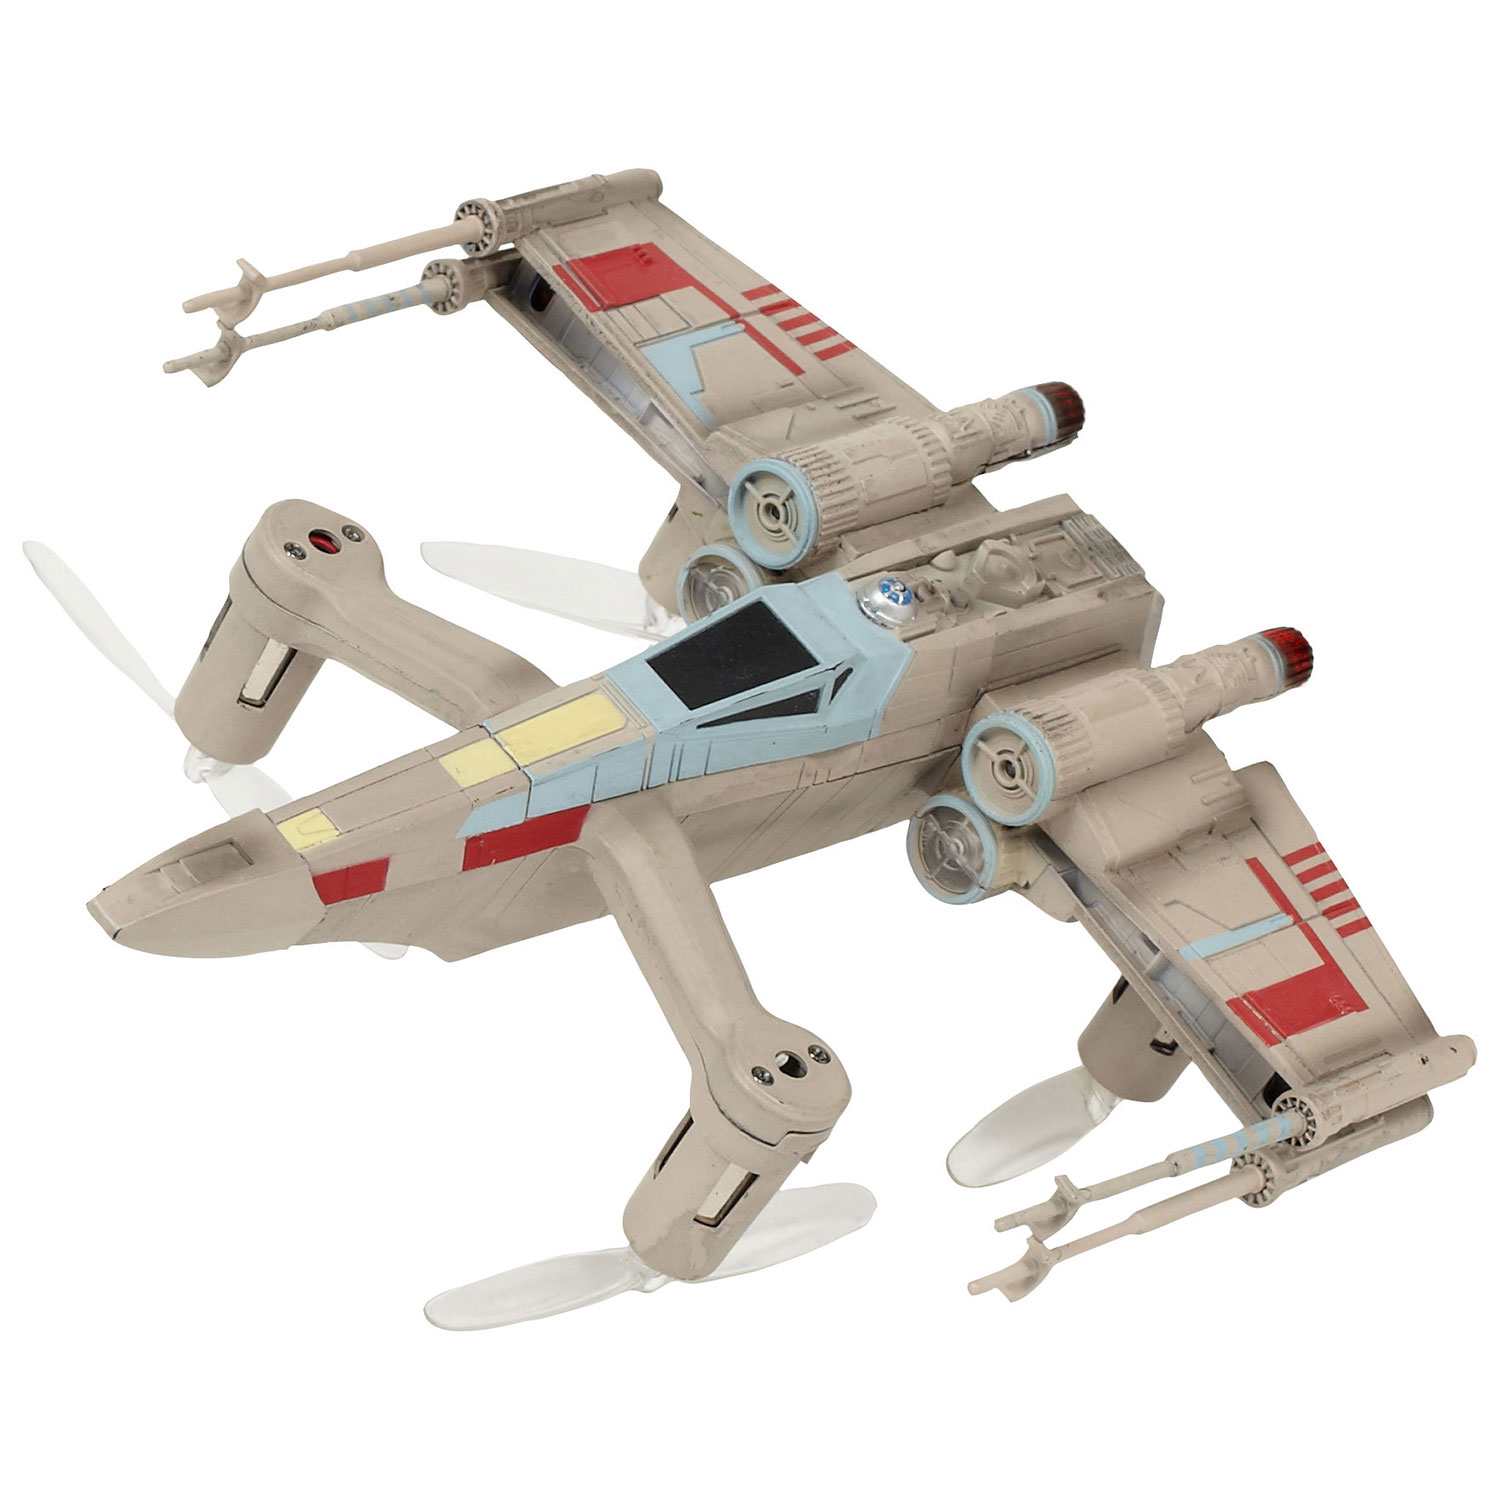 Fun with the Propel Star Wars X-Wing